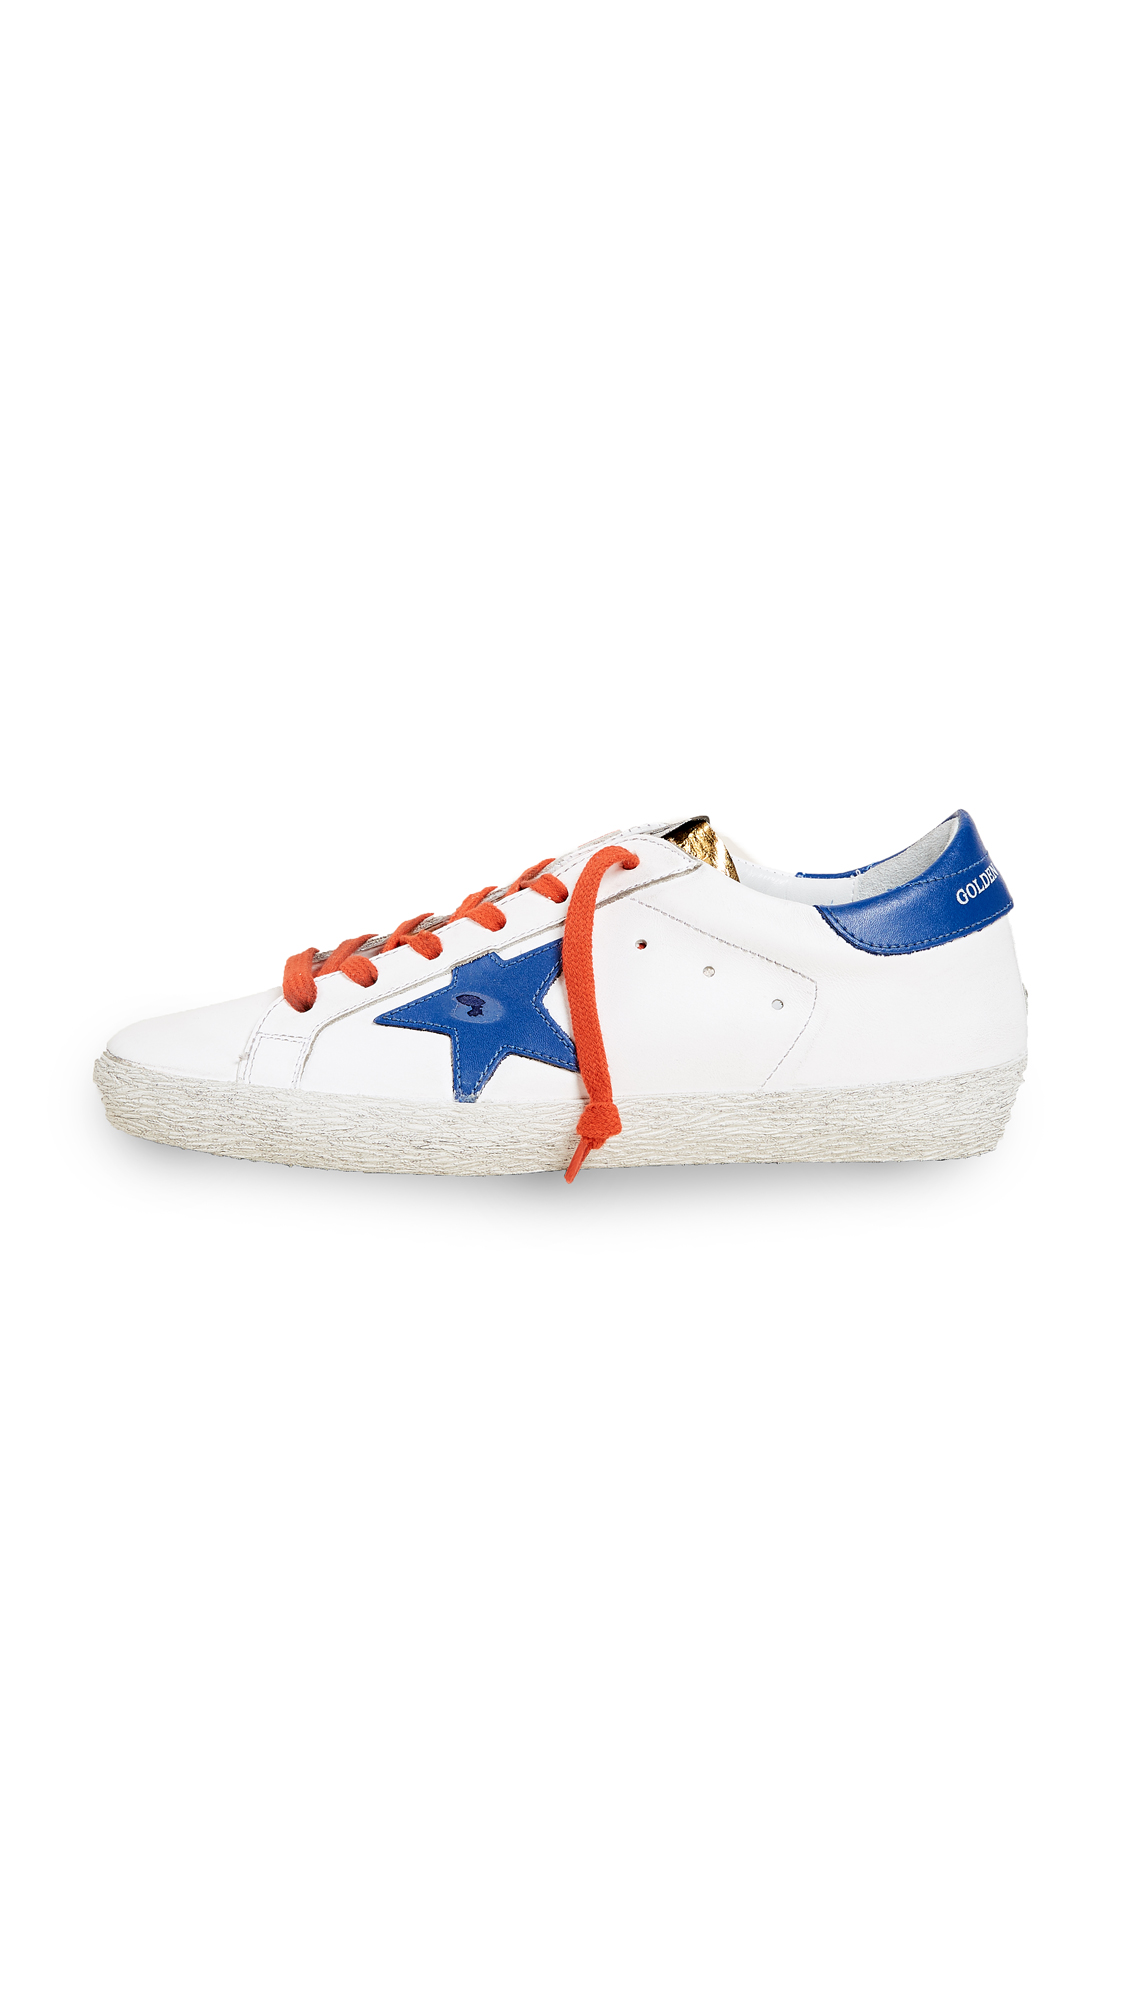 Golden Goose Superstar Sneakers - White/Gold/Red/Blue